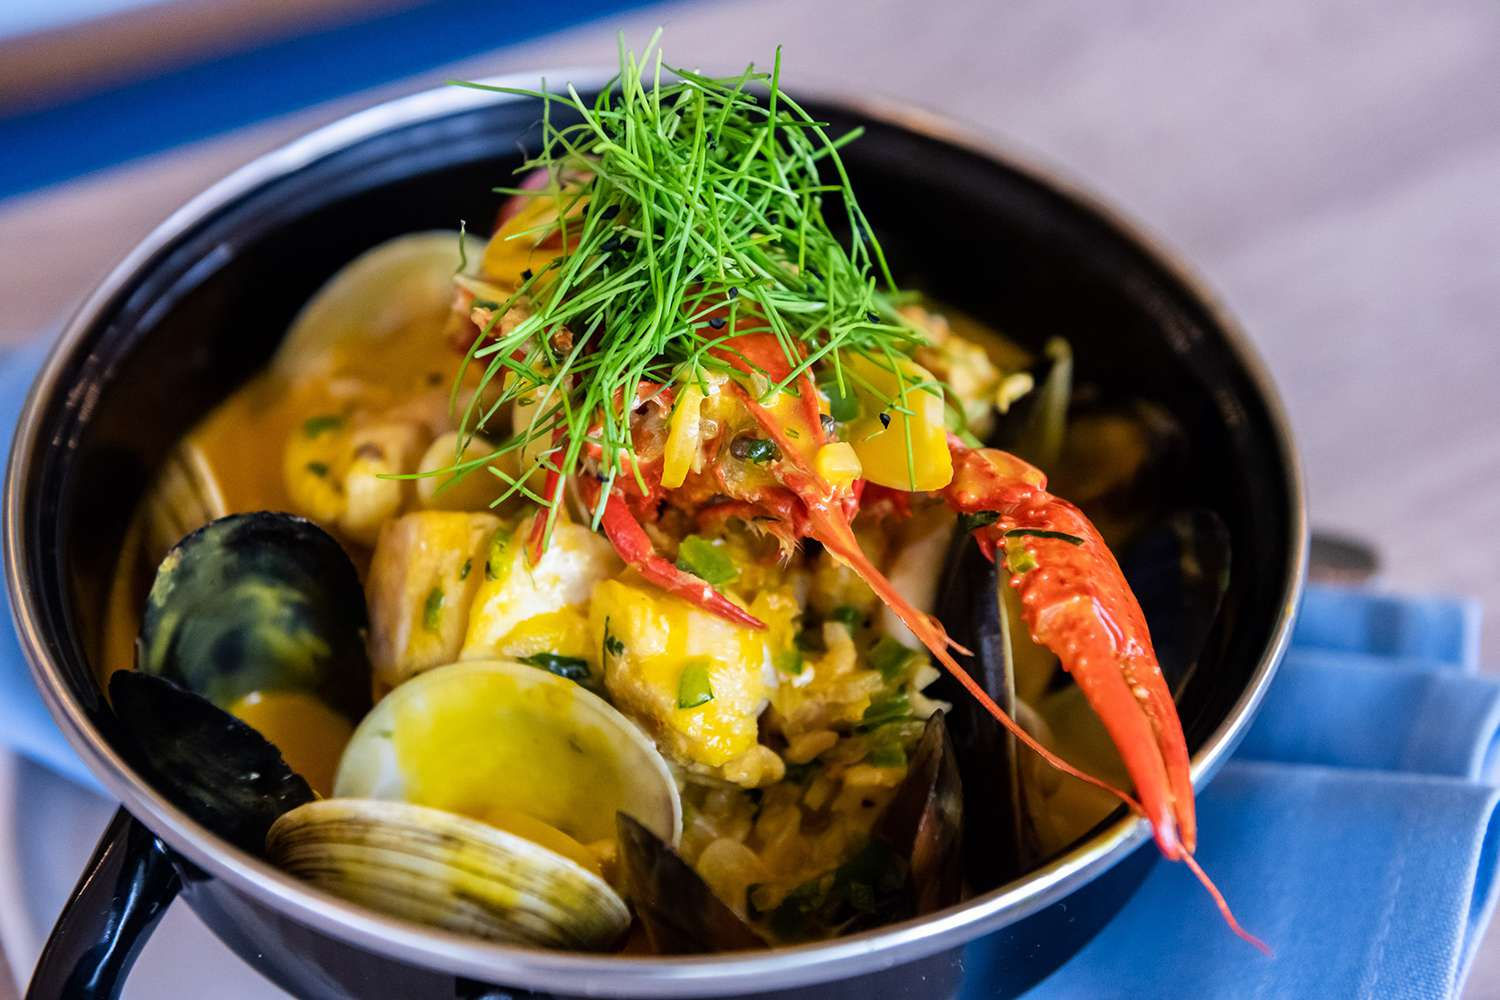 Seafood at Rivertail in Fort Lauderdale